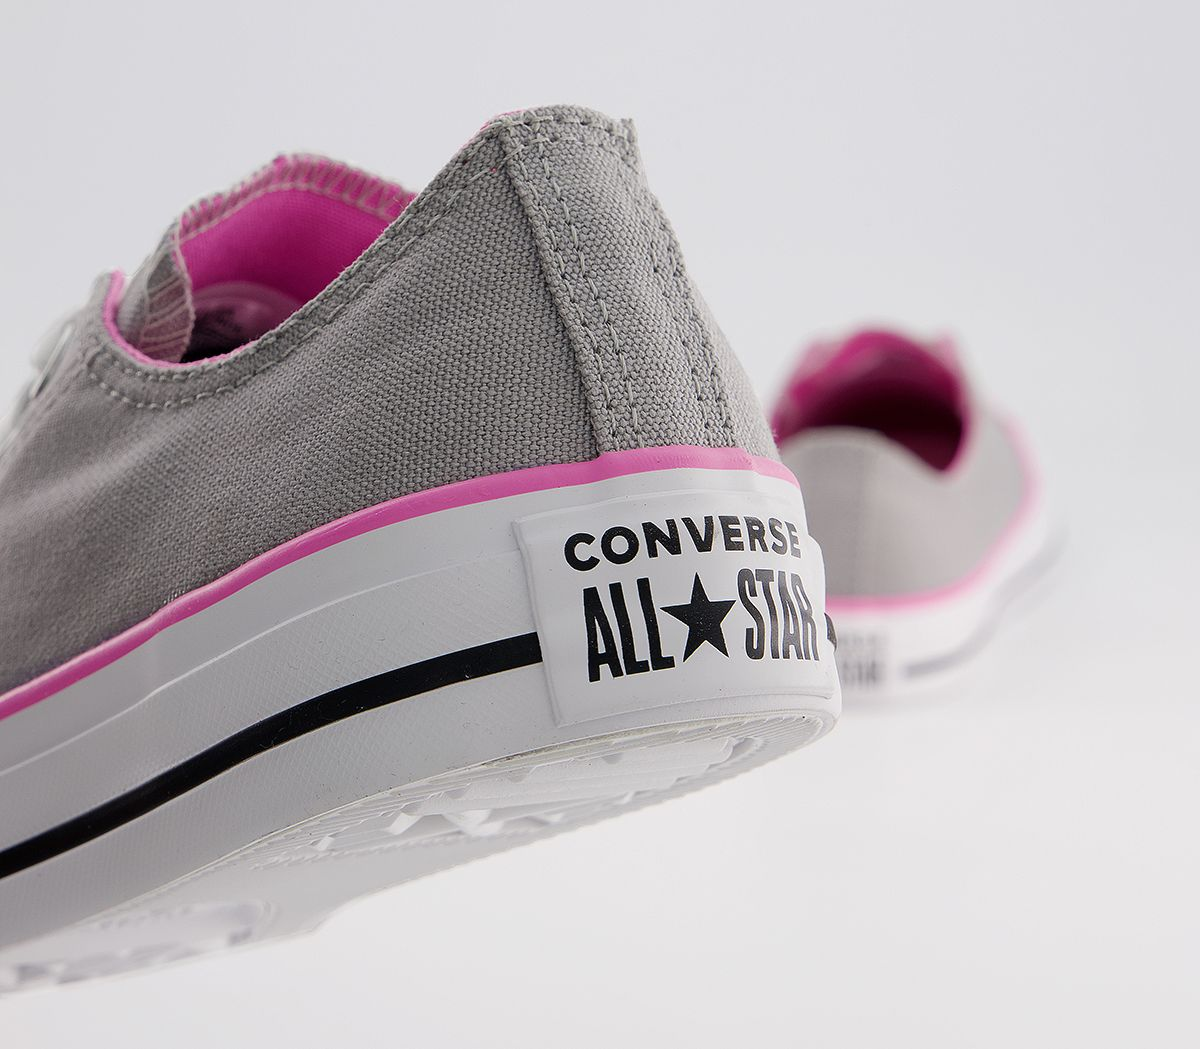 6f99a2f9595a Converse Converse All Star Low Trainers Grey Pink - Hers trainers